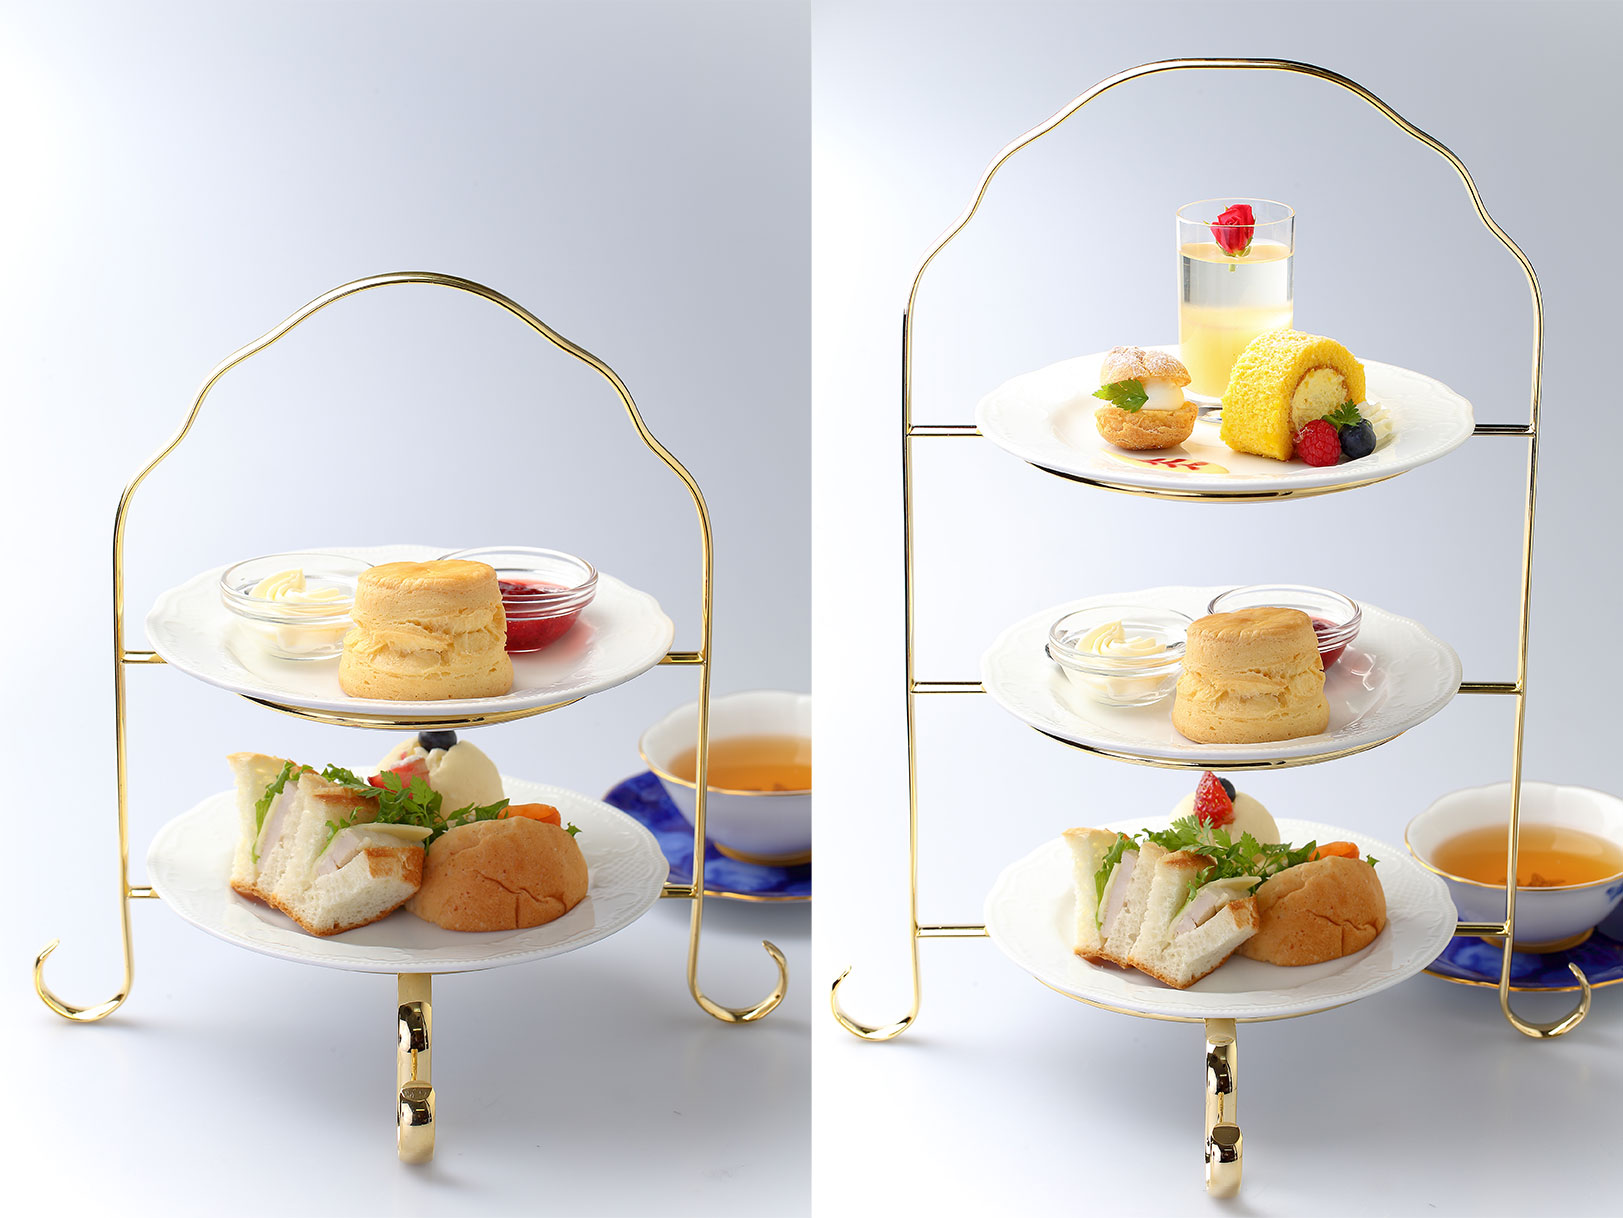 Afternoontea vic anna